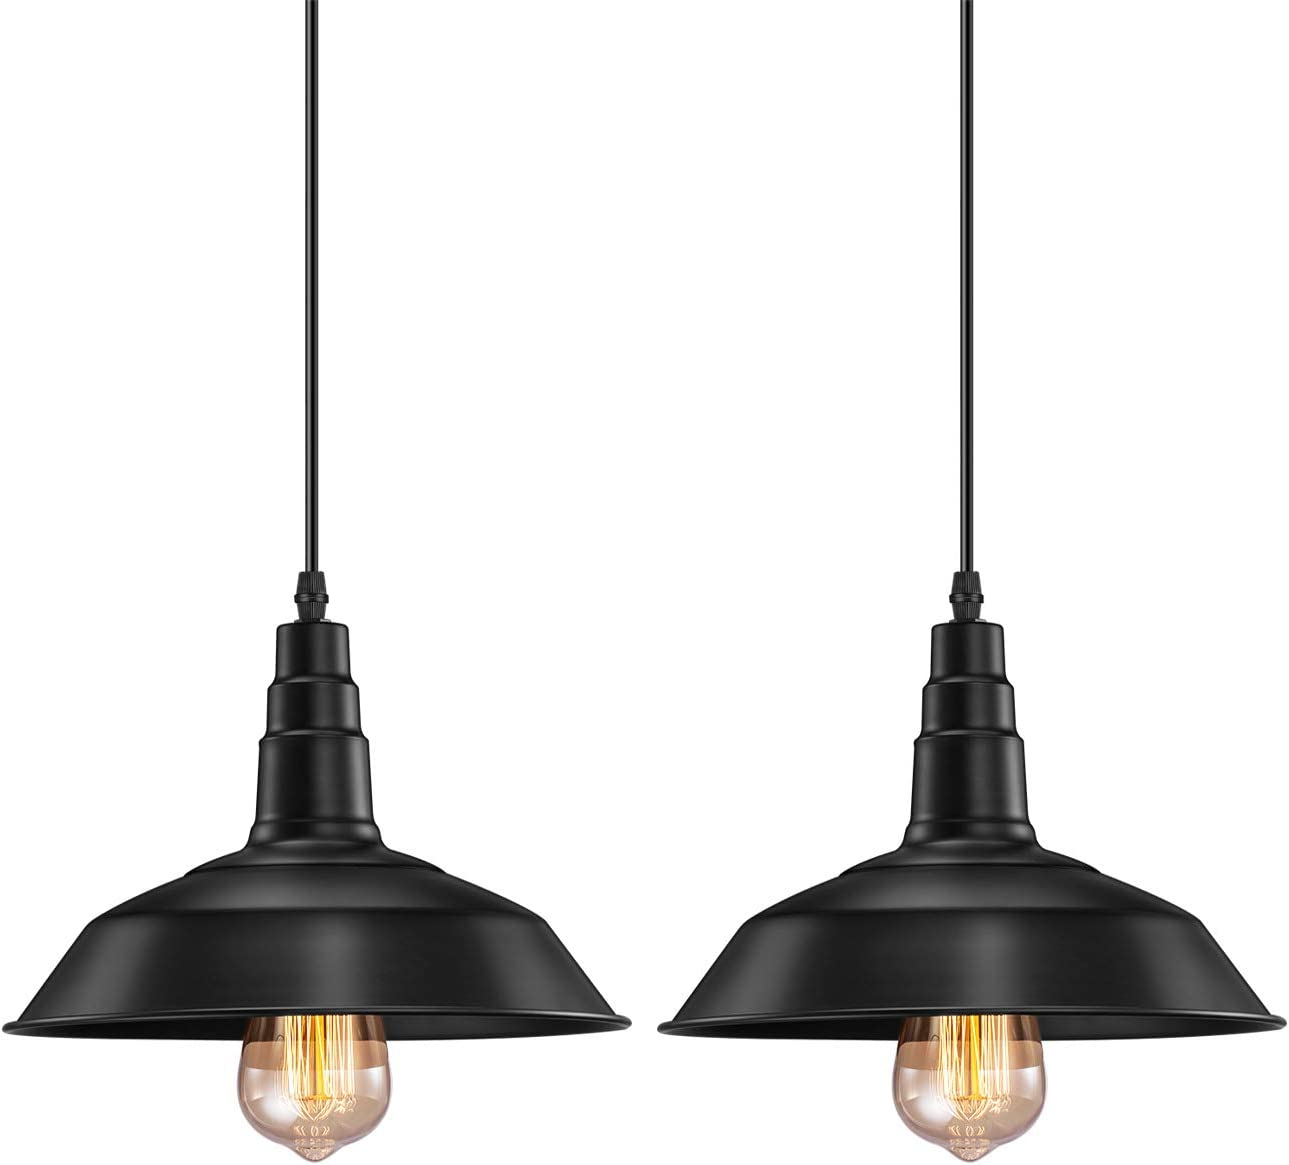 Retro Pendant Lights (2 Pack)